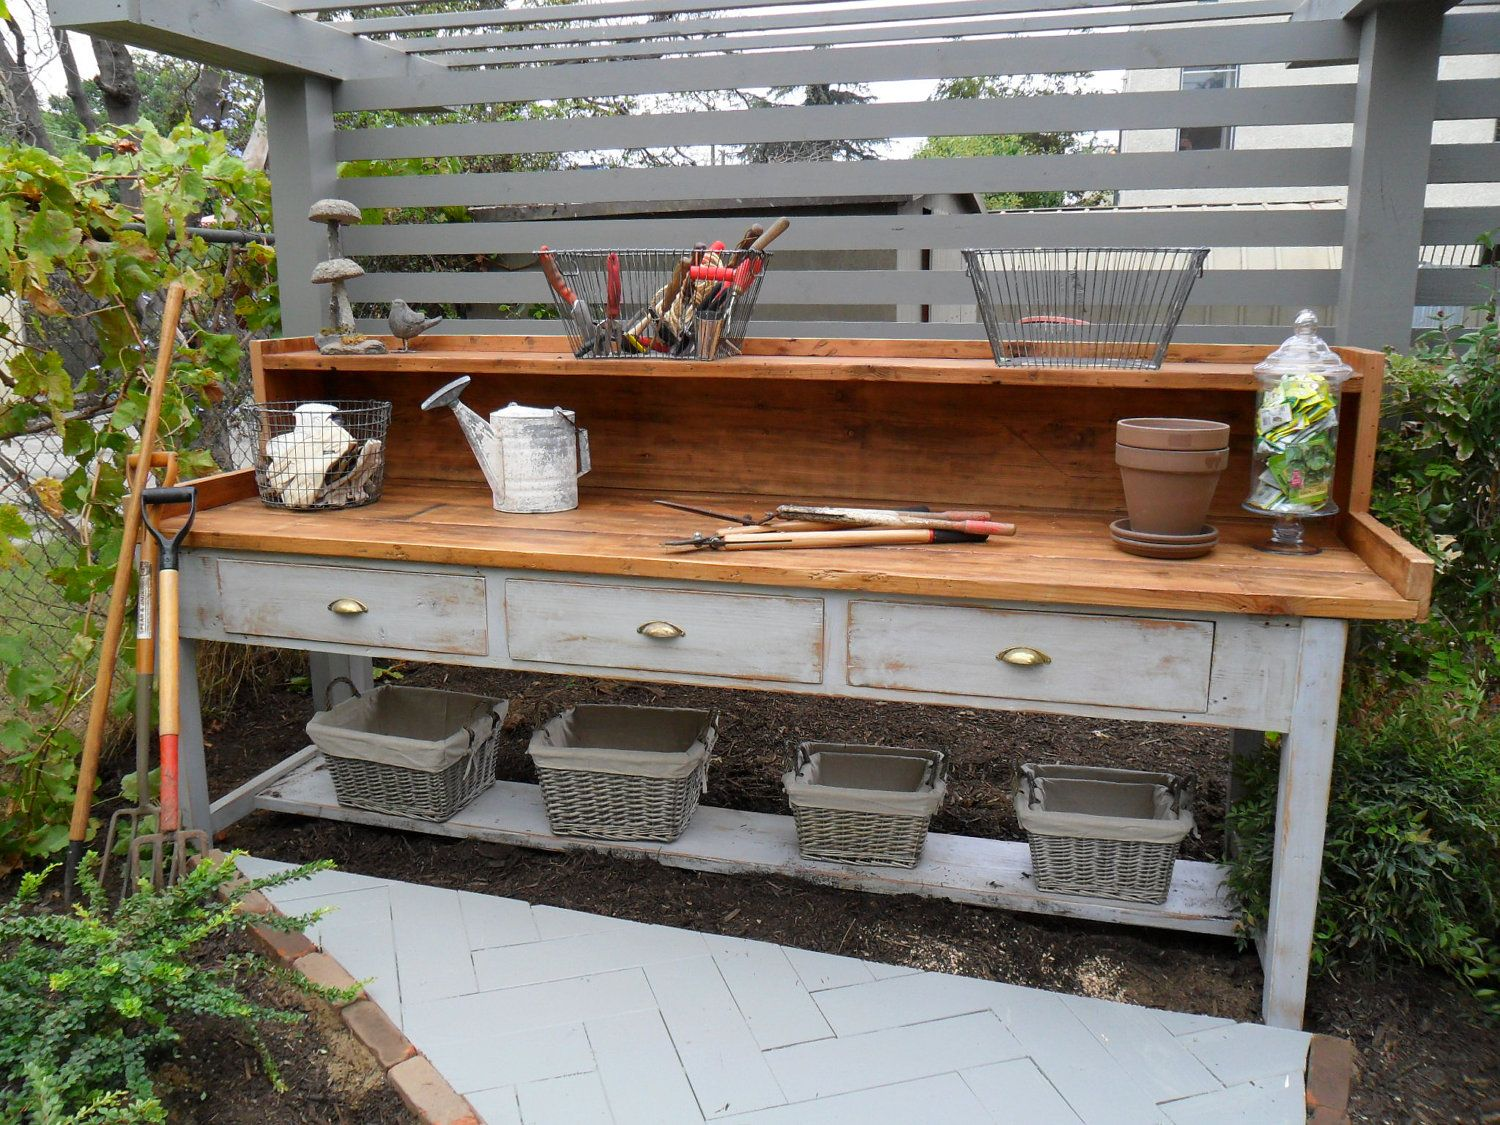 Lakewood 3 Person Swing, Garden Potting Table From Old Wood Potting Bench With Sink Outdoor Potting Bench Potting Bench Plans